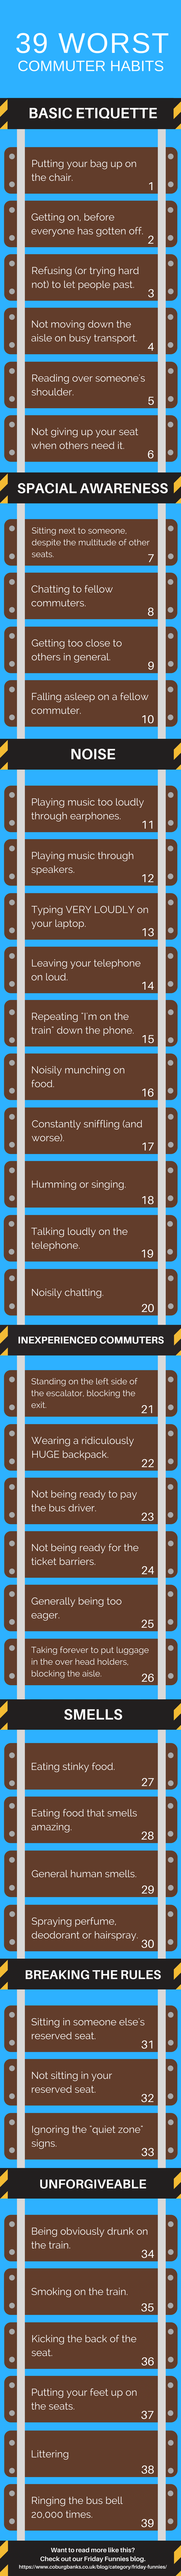 39 of the Worst Commuter Habits